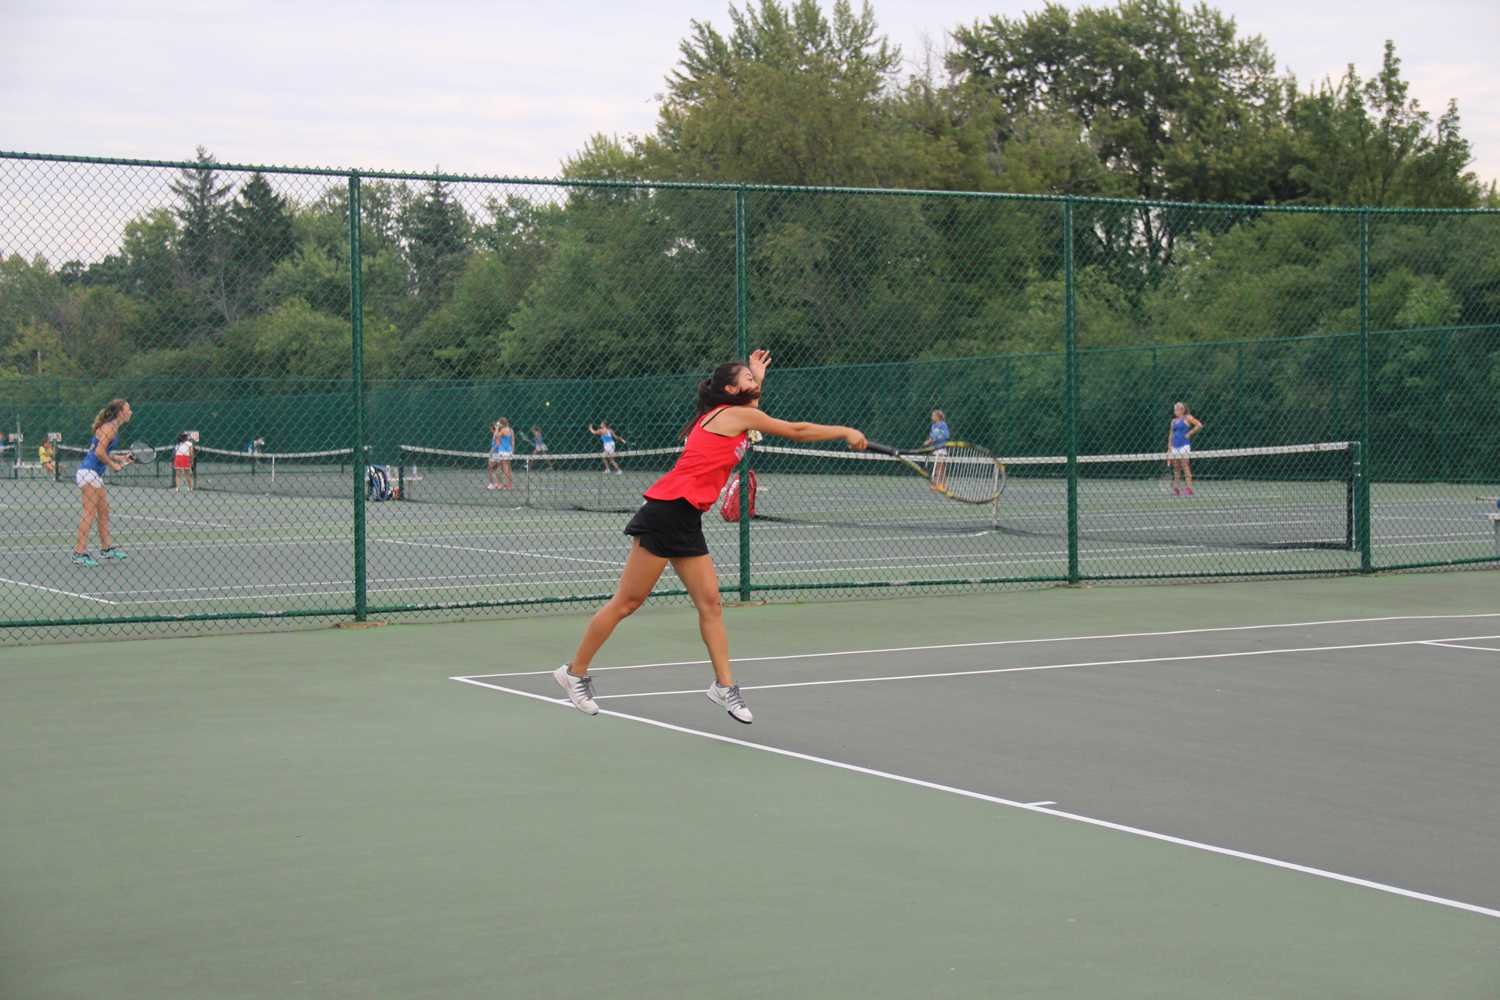 Junior Bree Park implements time management strategies to help her balance school work with her sports commitment on the tennis team.